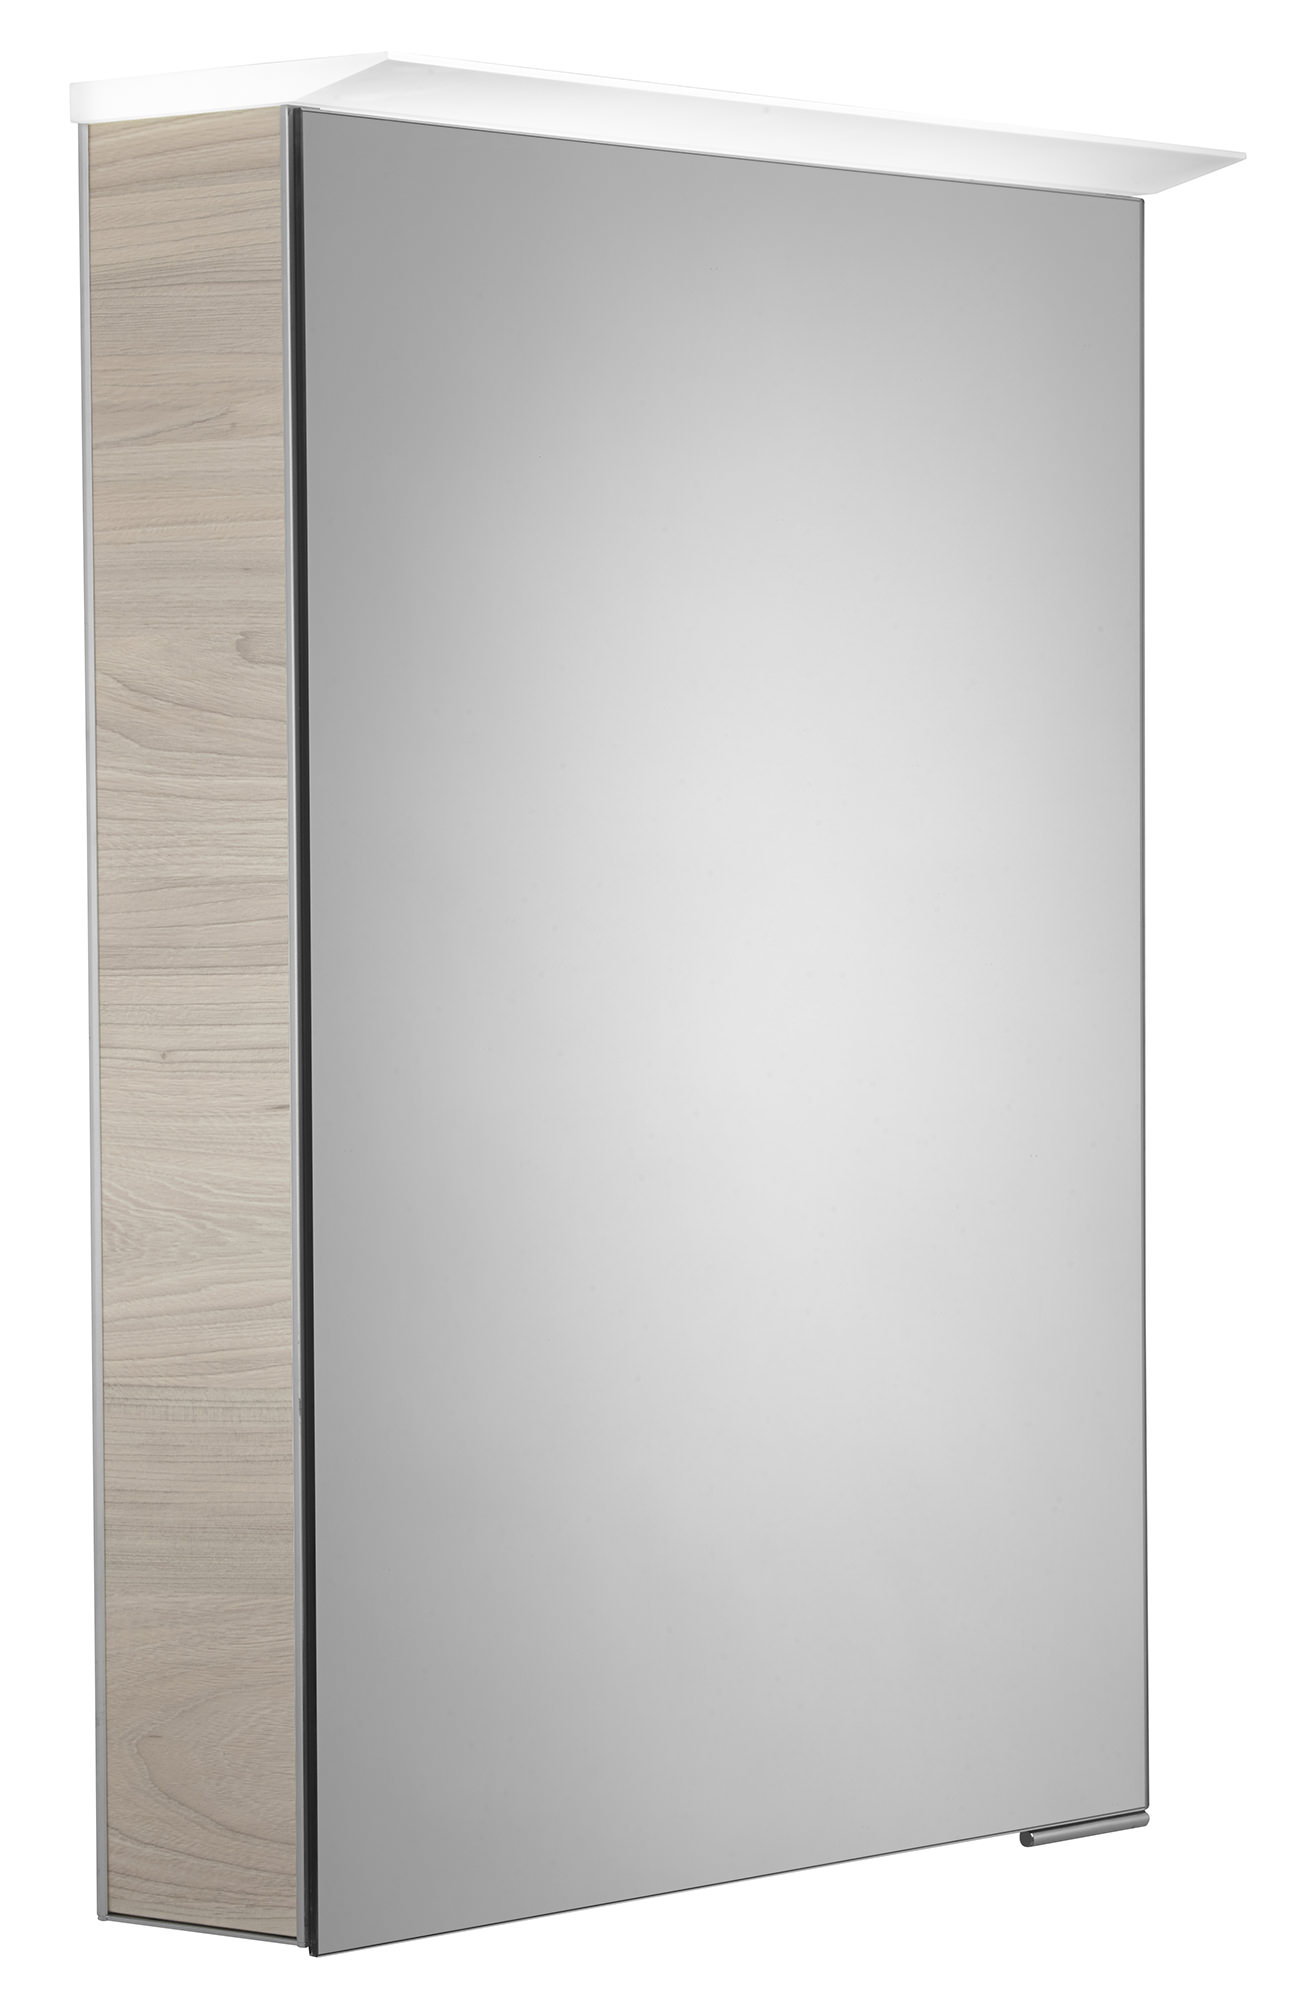 Roper Rhodes Virtue 505mm Light Elm Led Illuminated Mirror